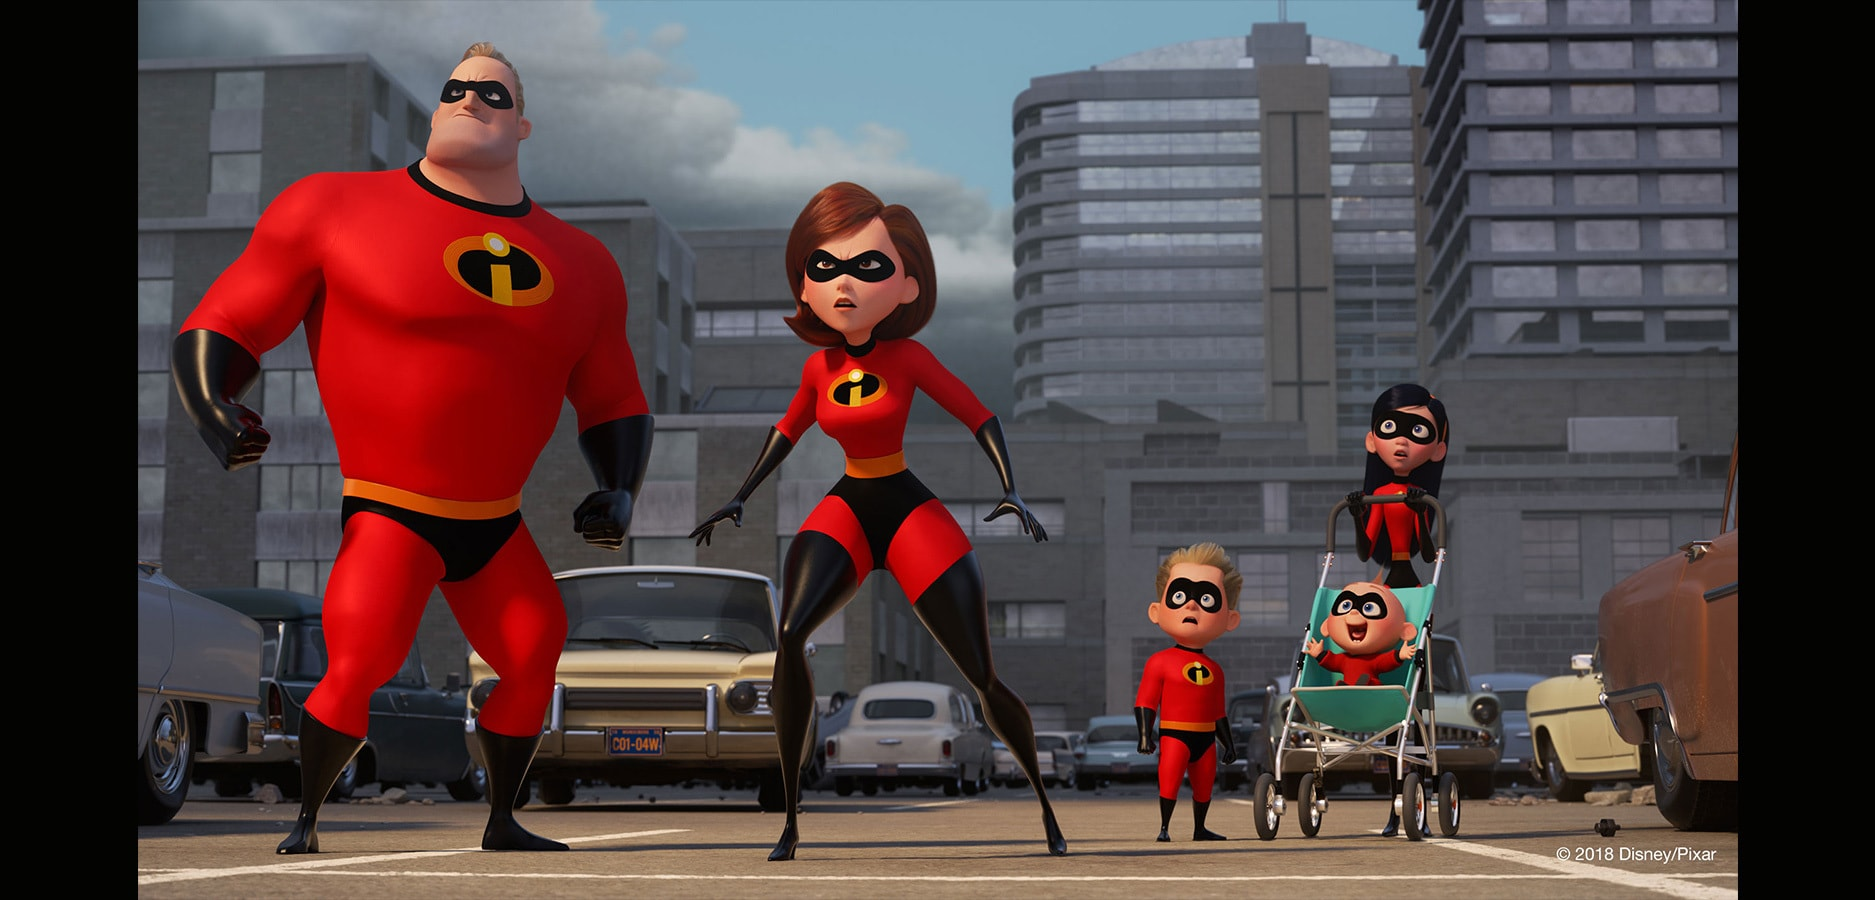 The Incredibles face danger in their super suits